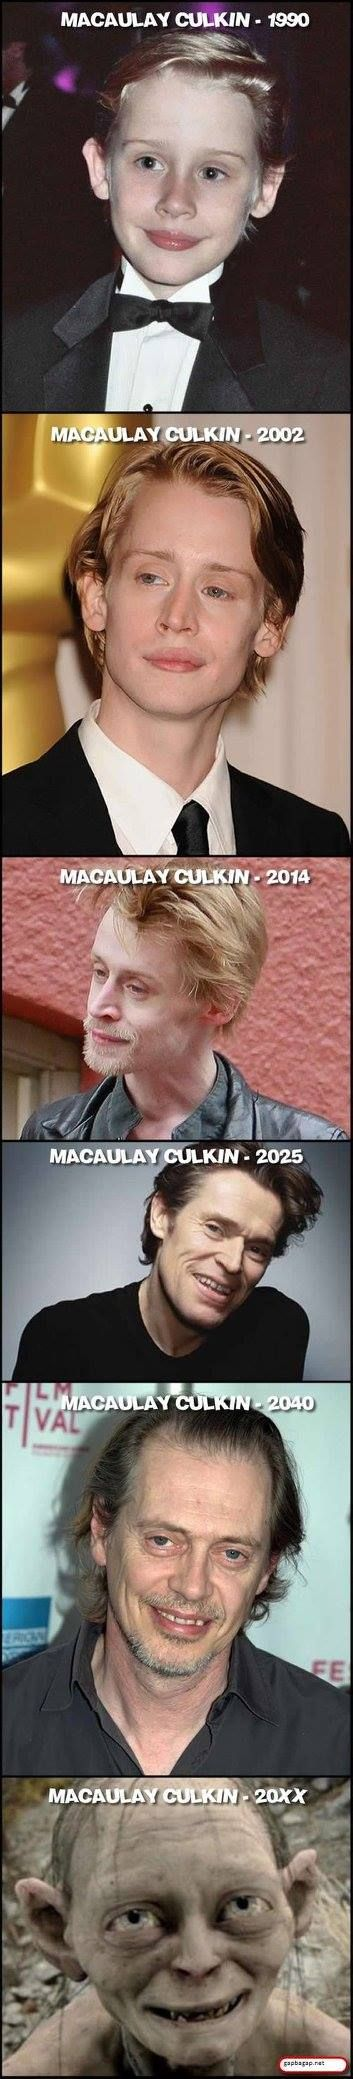 Funny Jokes About Macaulay Culkin